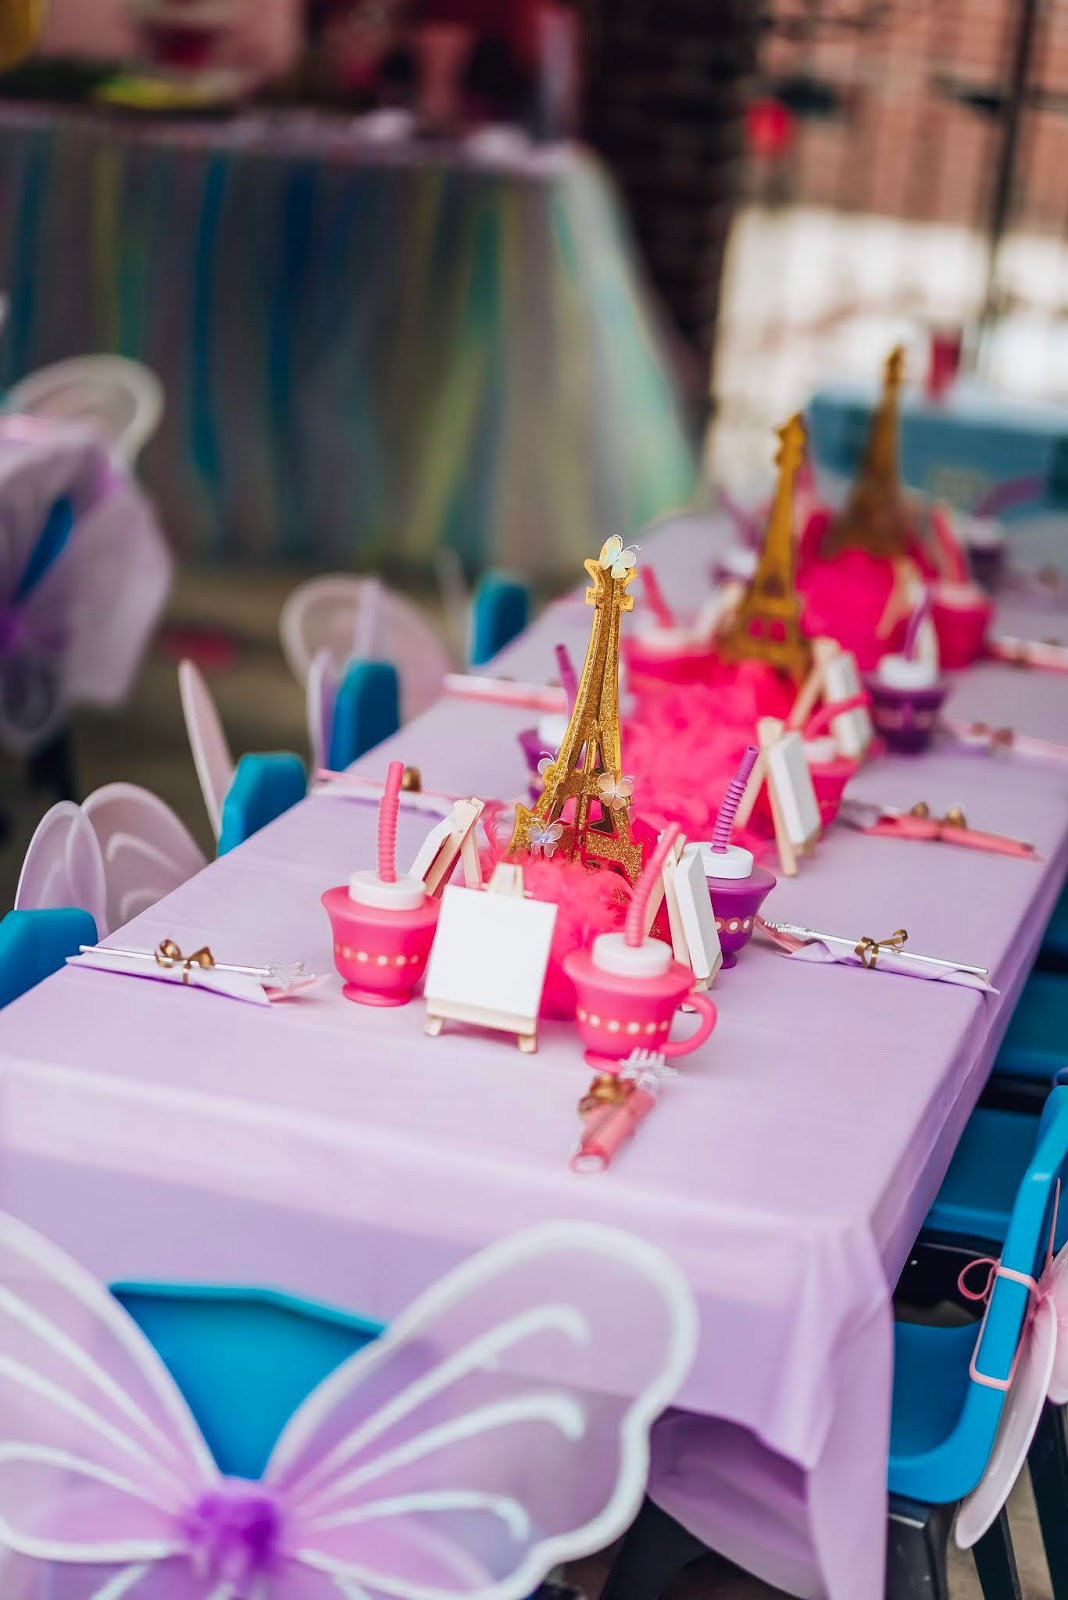 Madeline's Fancy Nancy, Paris, Butterfly Themed 4th Birthday Party - Something Delightful Blog #partyplanning #kidsbirthdayparty #birthdaypartyideas #parisparty #butterflyparty #fancynancy #fancynancyparty #fourthbirthdayideas